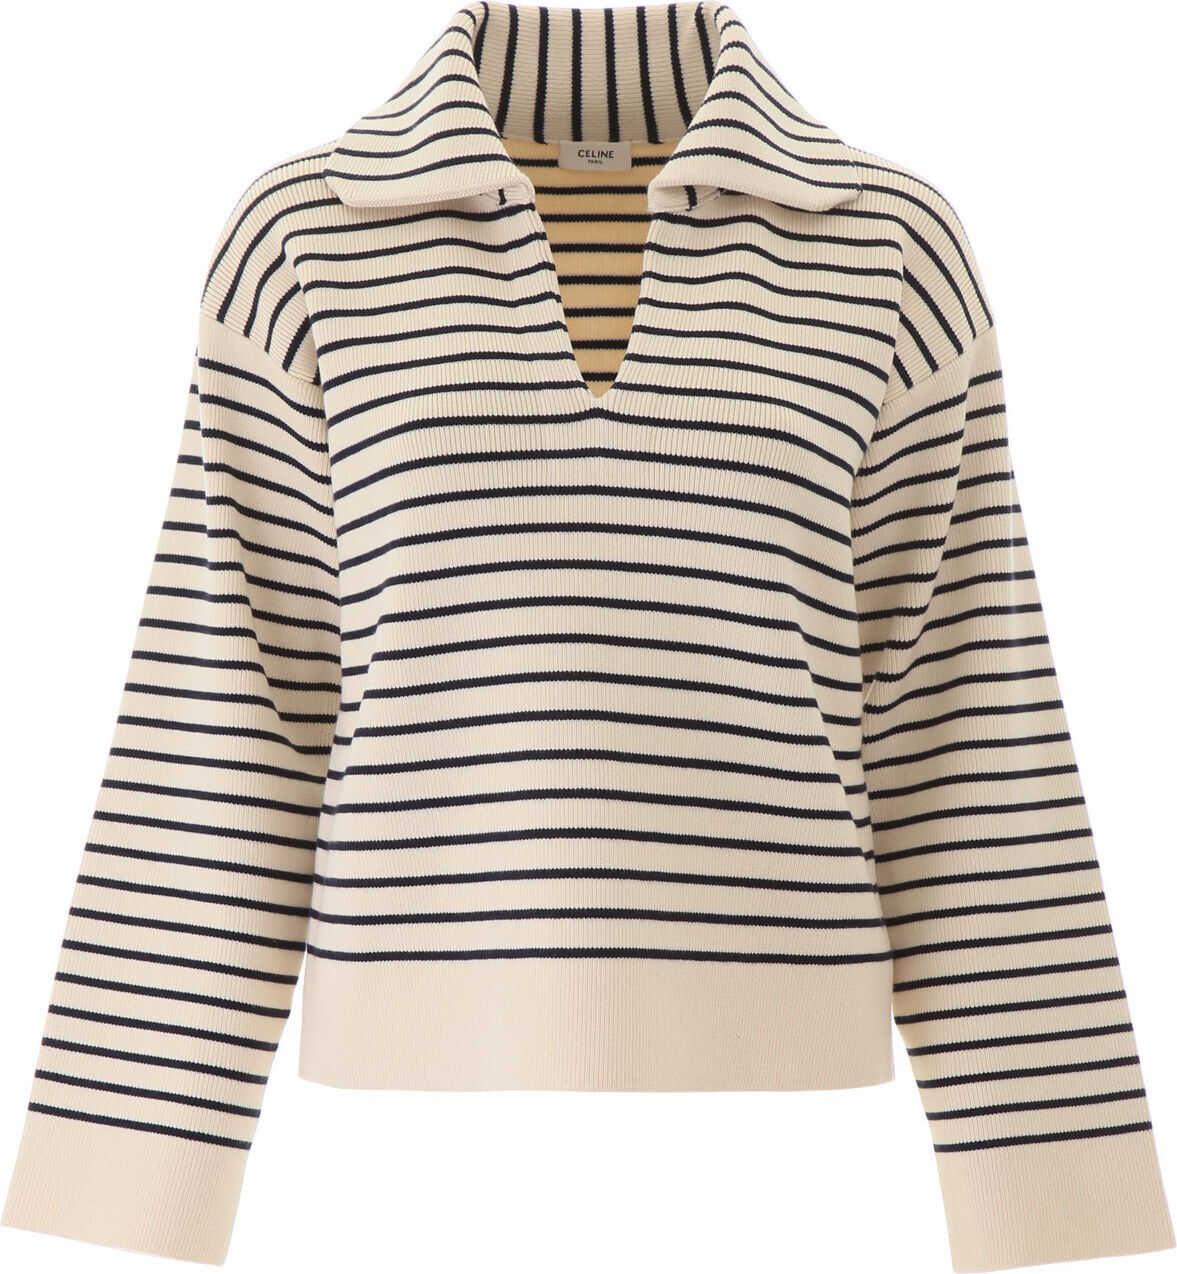 Céline Marinier Pull With V Neck CREAM NAVY